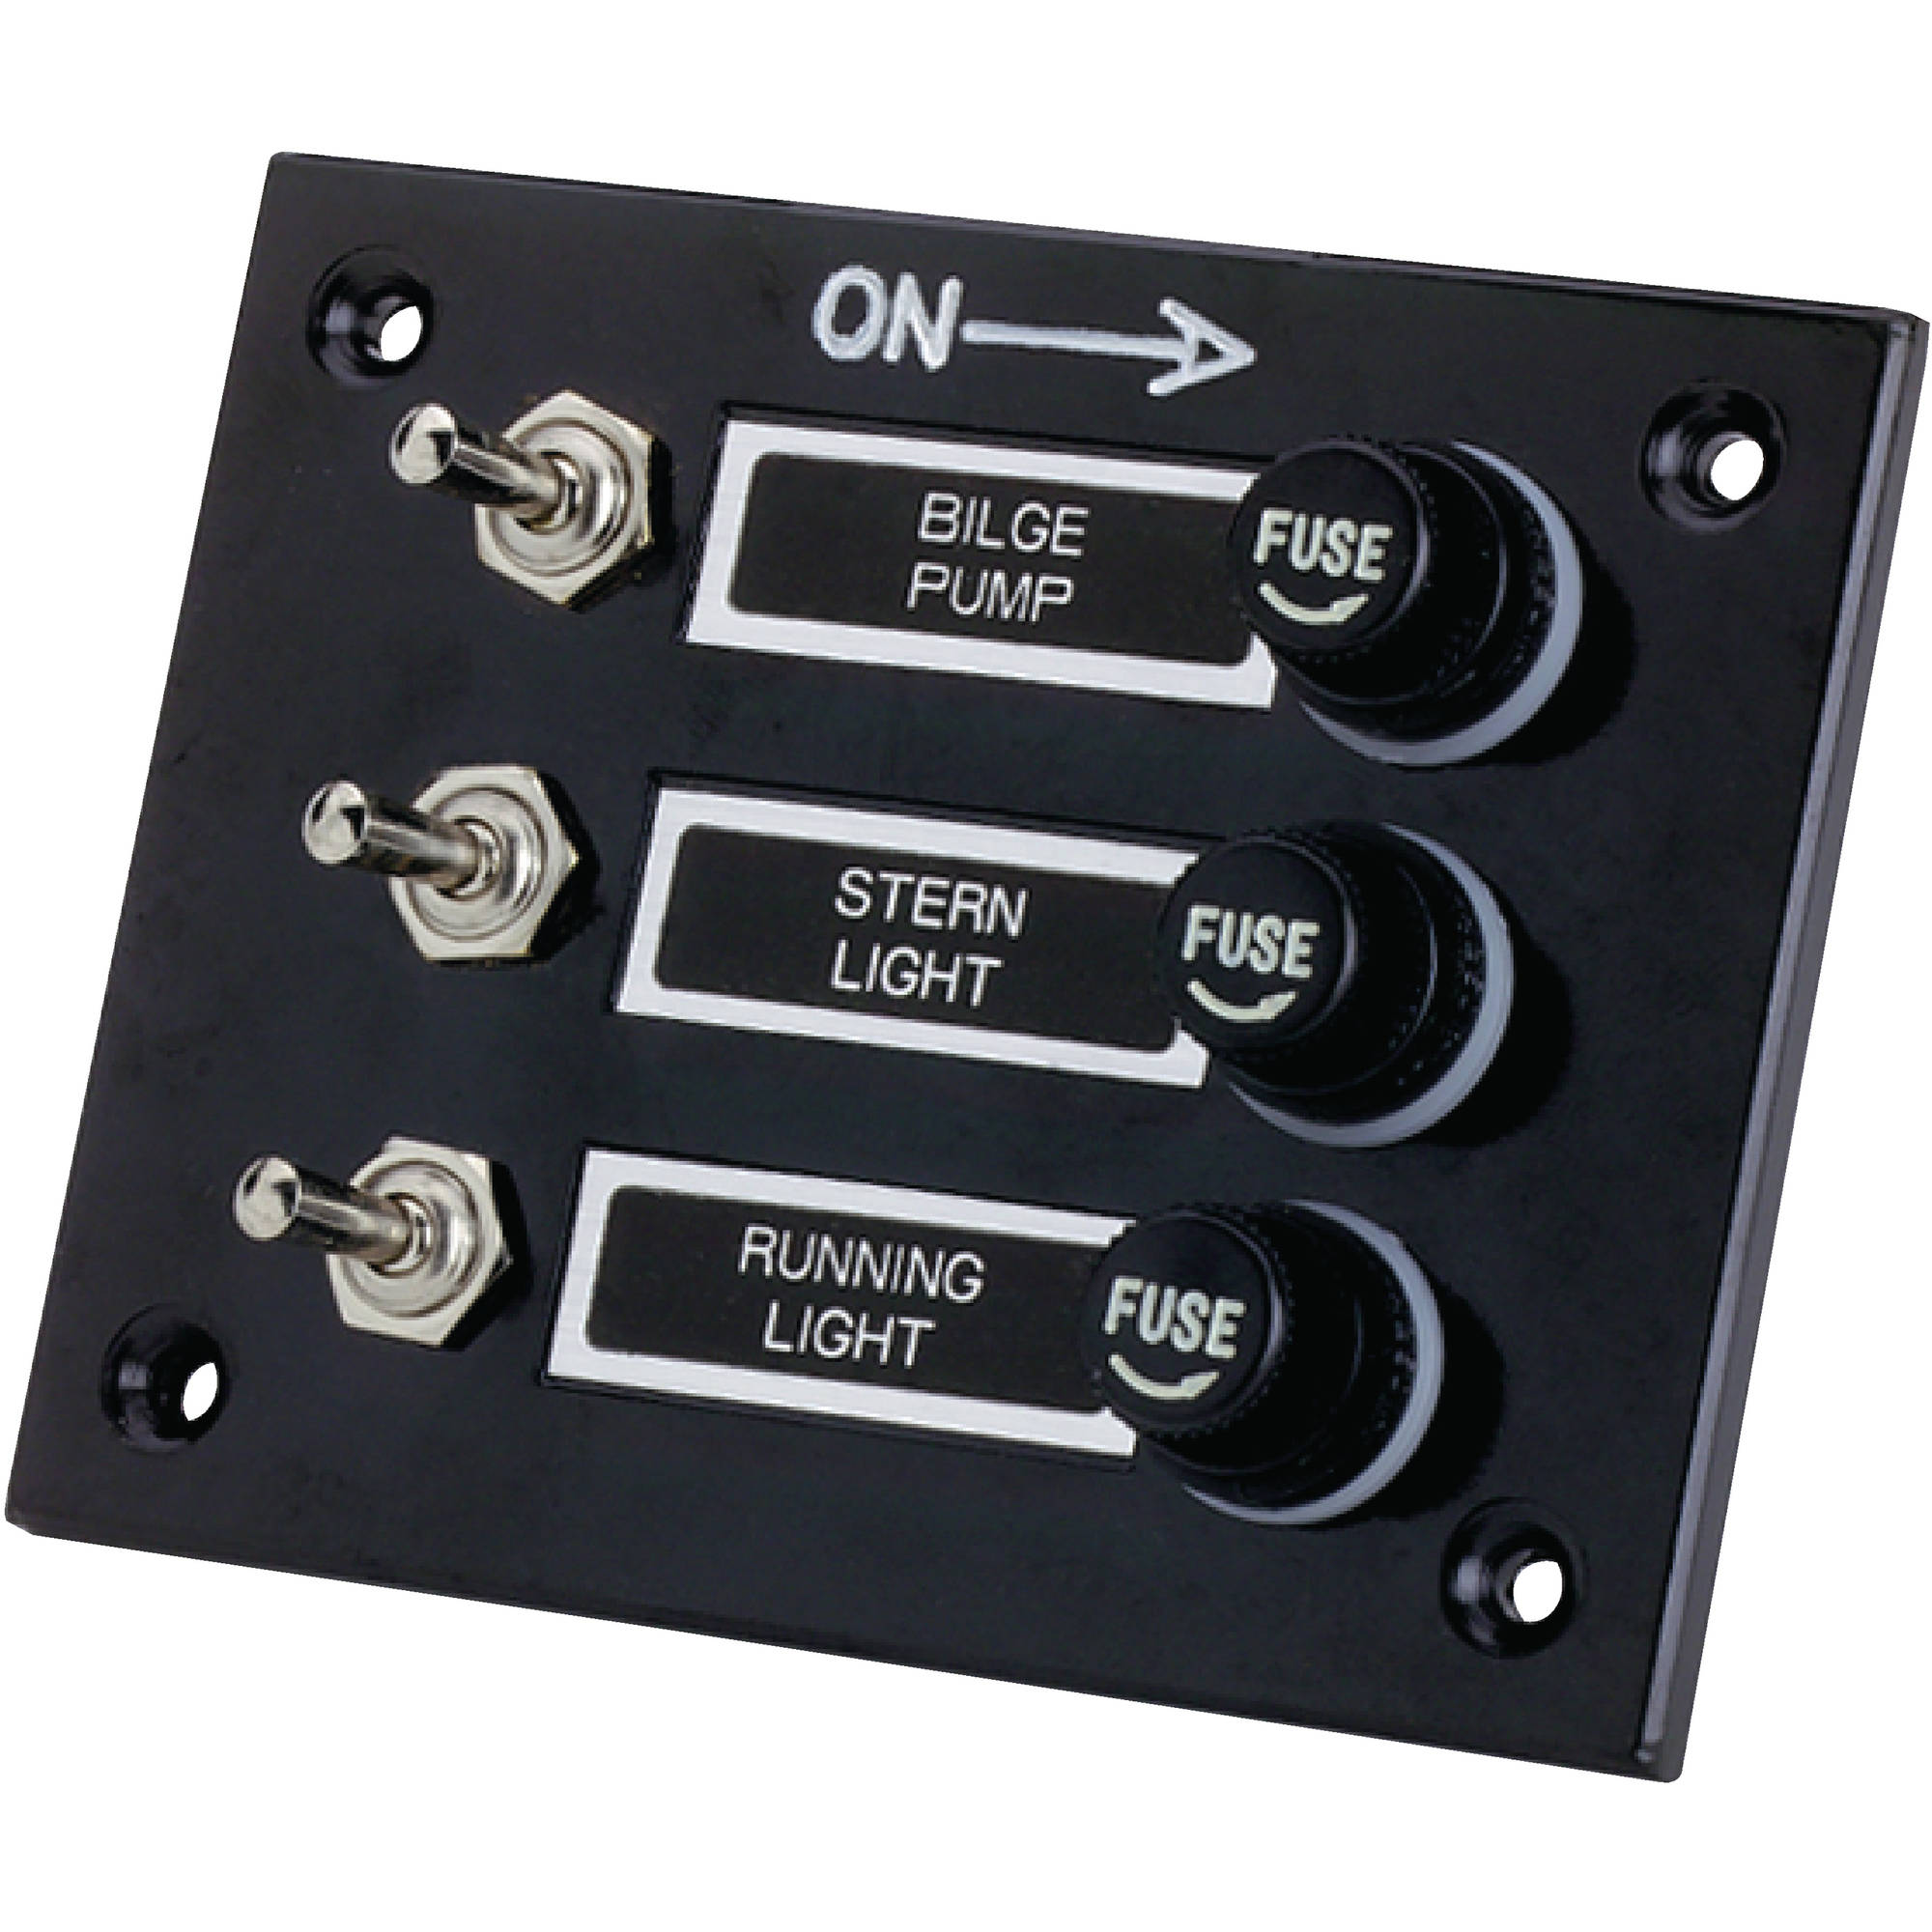 Attwood 3 Gang Toggle Switch Panel with Fuses